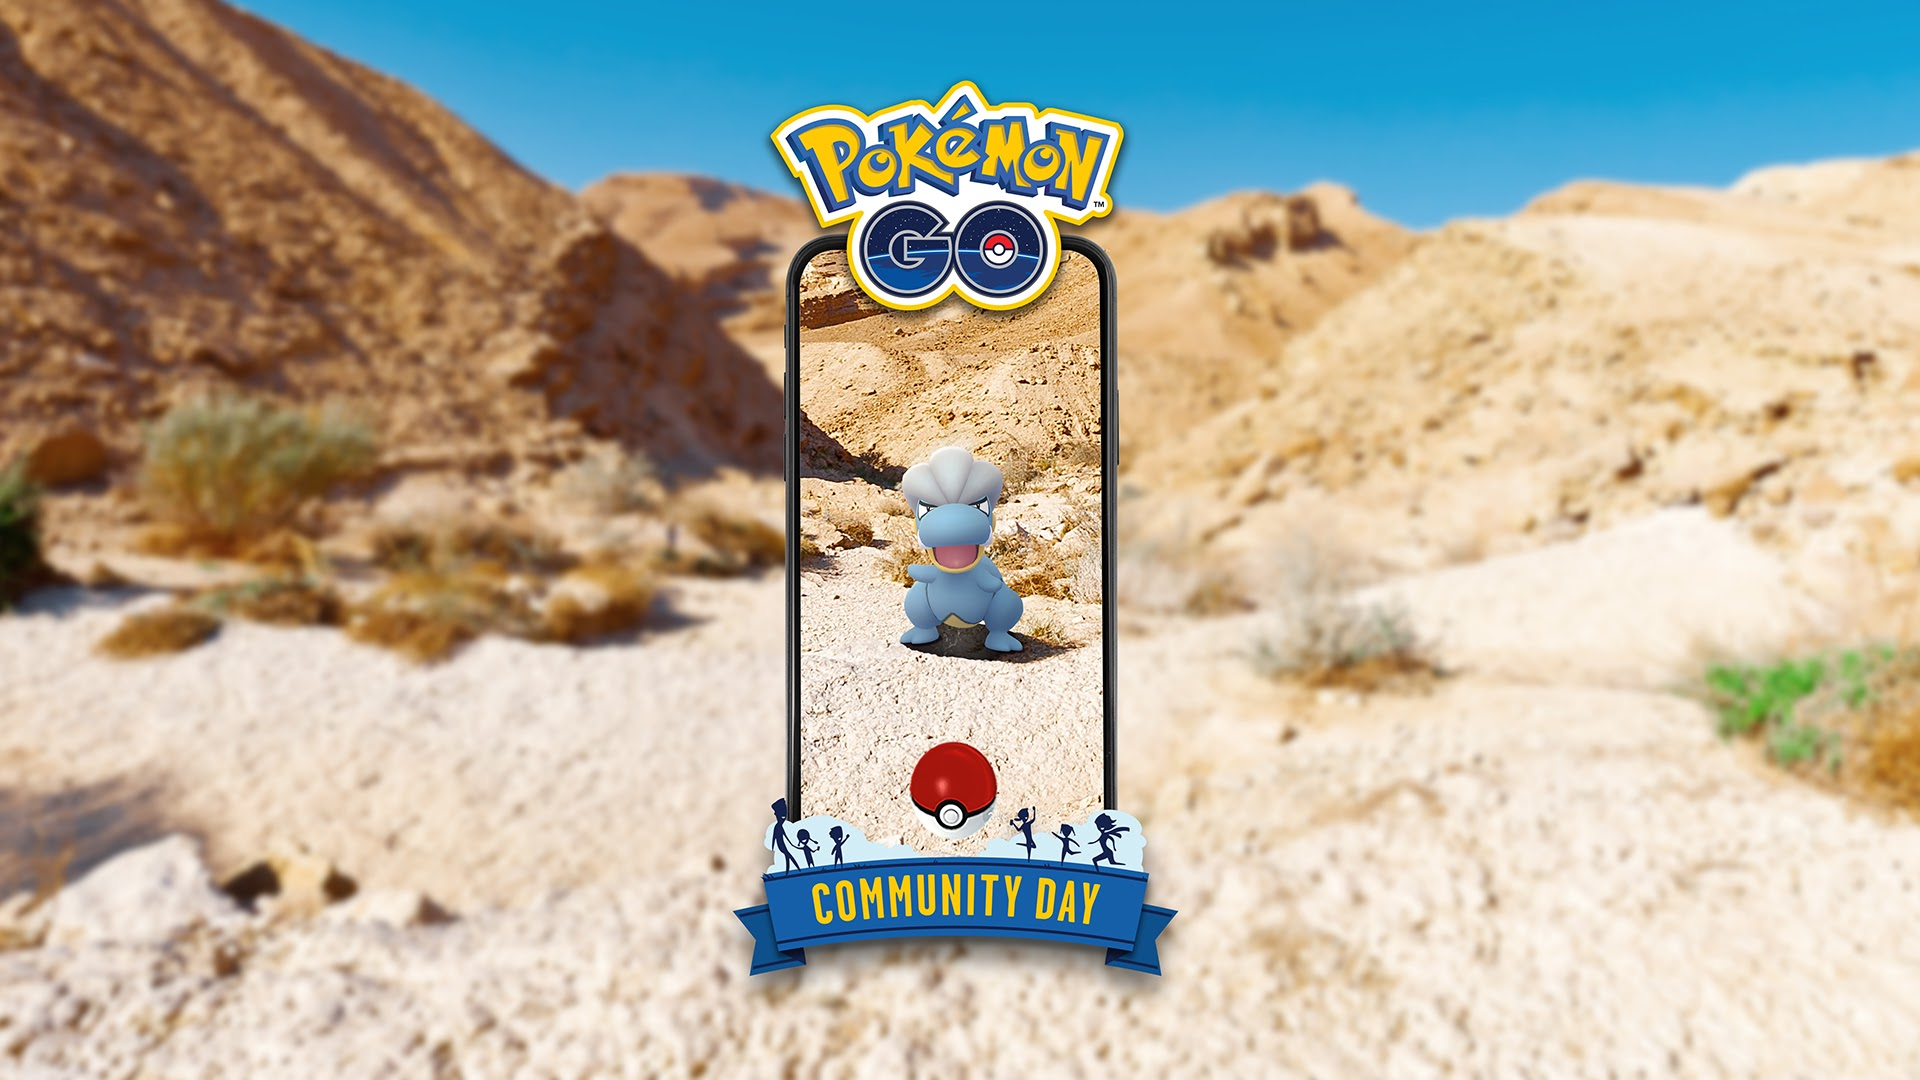 Pokemon GO: April 2019 Community Day Guide, Details, and Dates